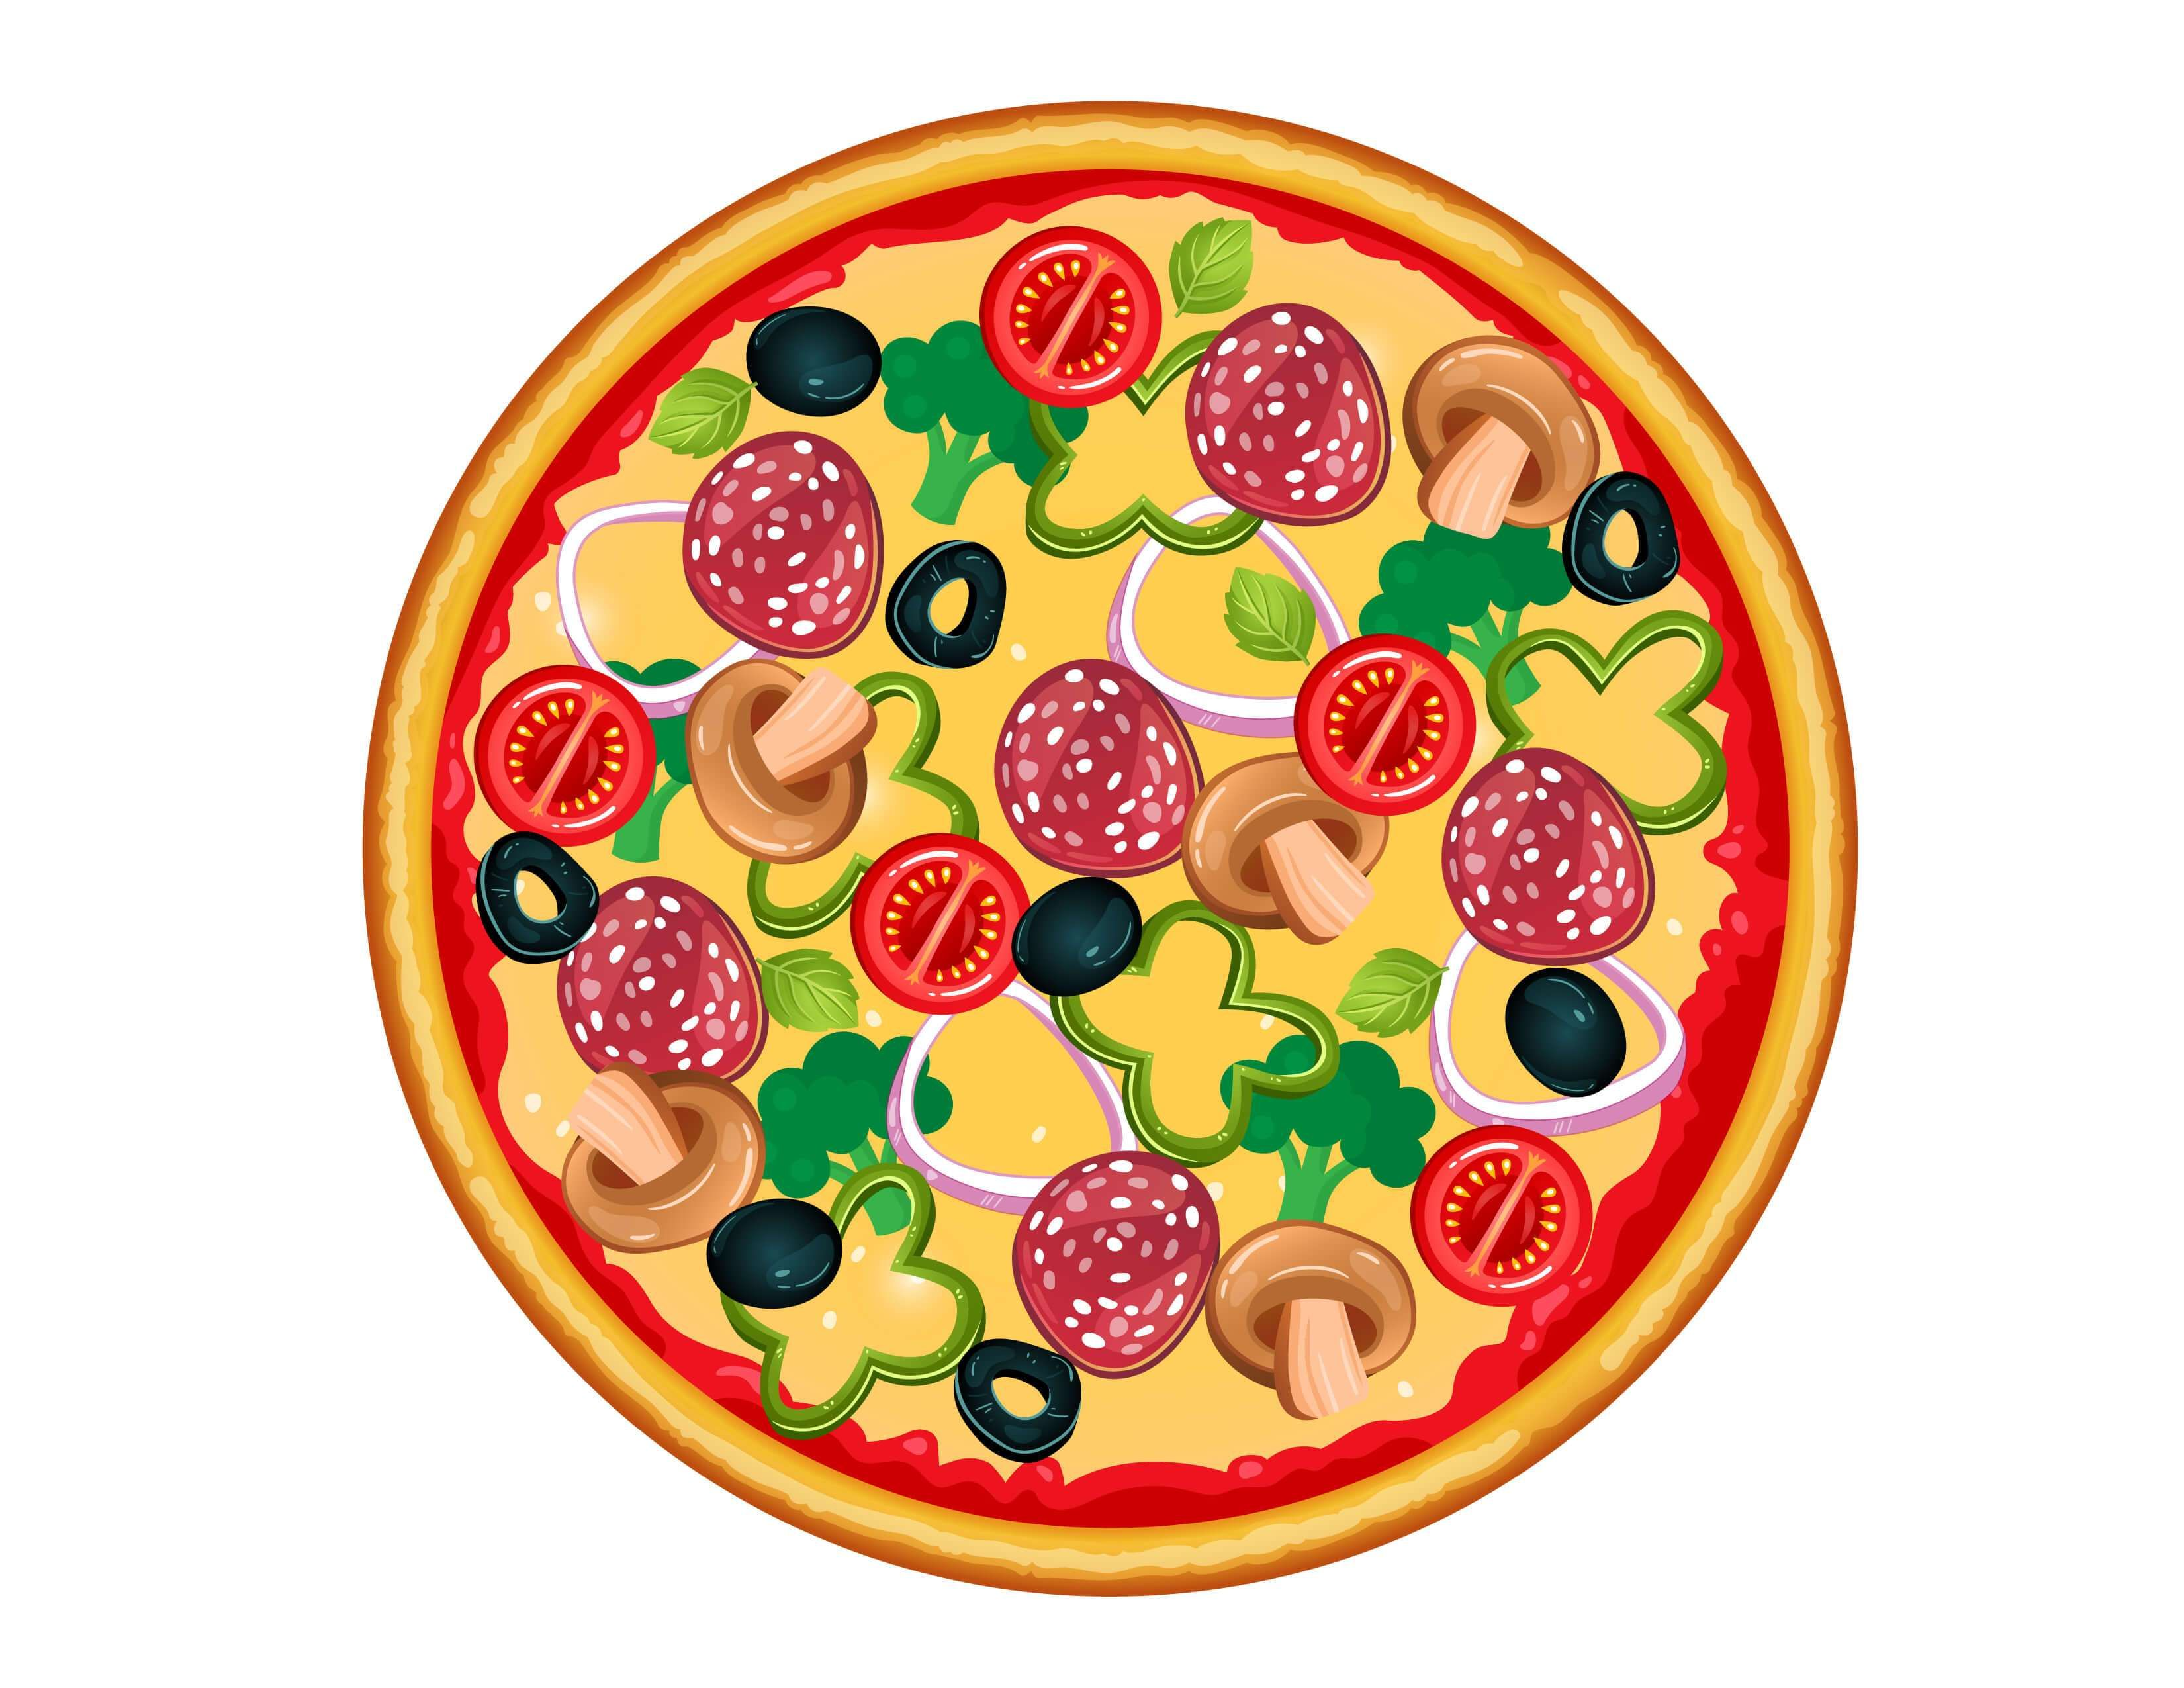 Make A Pizza Printable Cutouts Mrs Merry Fun Worksheets For Kids How To Make Pizza Pizza Craft [ 2550 x 3300 Pixel ]